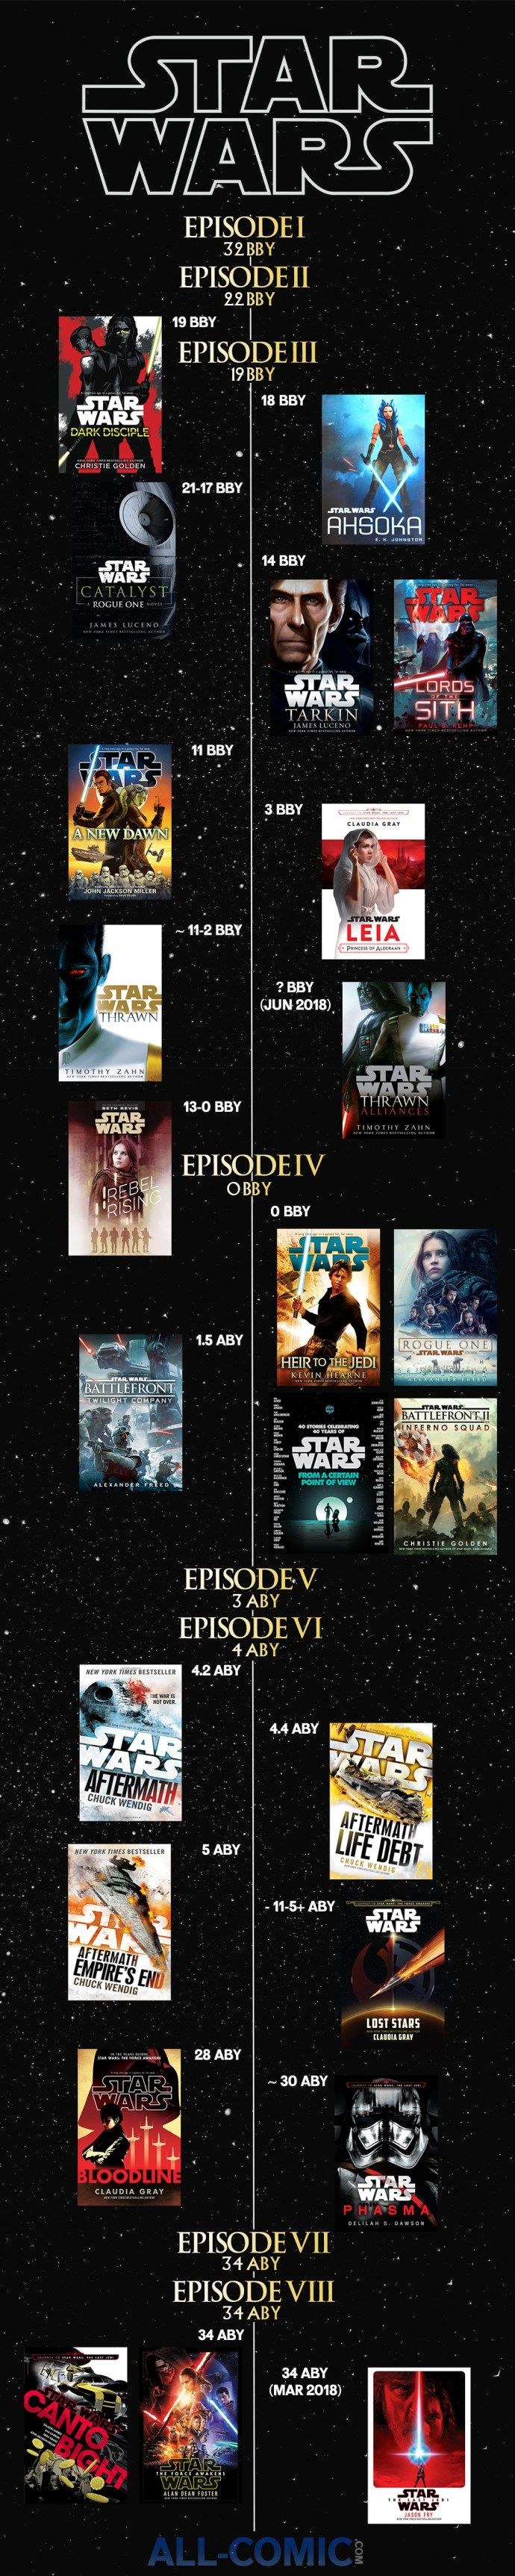 "Welcome to the All-Comic.com Star Wars Canon Novel Timeline! Everything that is currently out, with a few books that are currently scheduled can be found below. This also includes the approximate date in the timeline that they take place. BBY = Before the Battle of Yavin while ABY = After the Battle of Yavin, which of course is the final battle of Star Wars: A New Hope that leads to the destruction of the first Death Star. Note that we have not included the novels under the ""Junior""..."